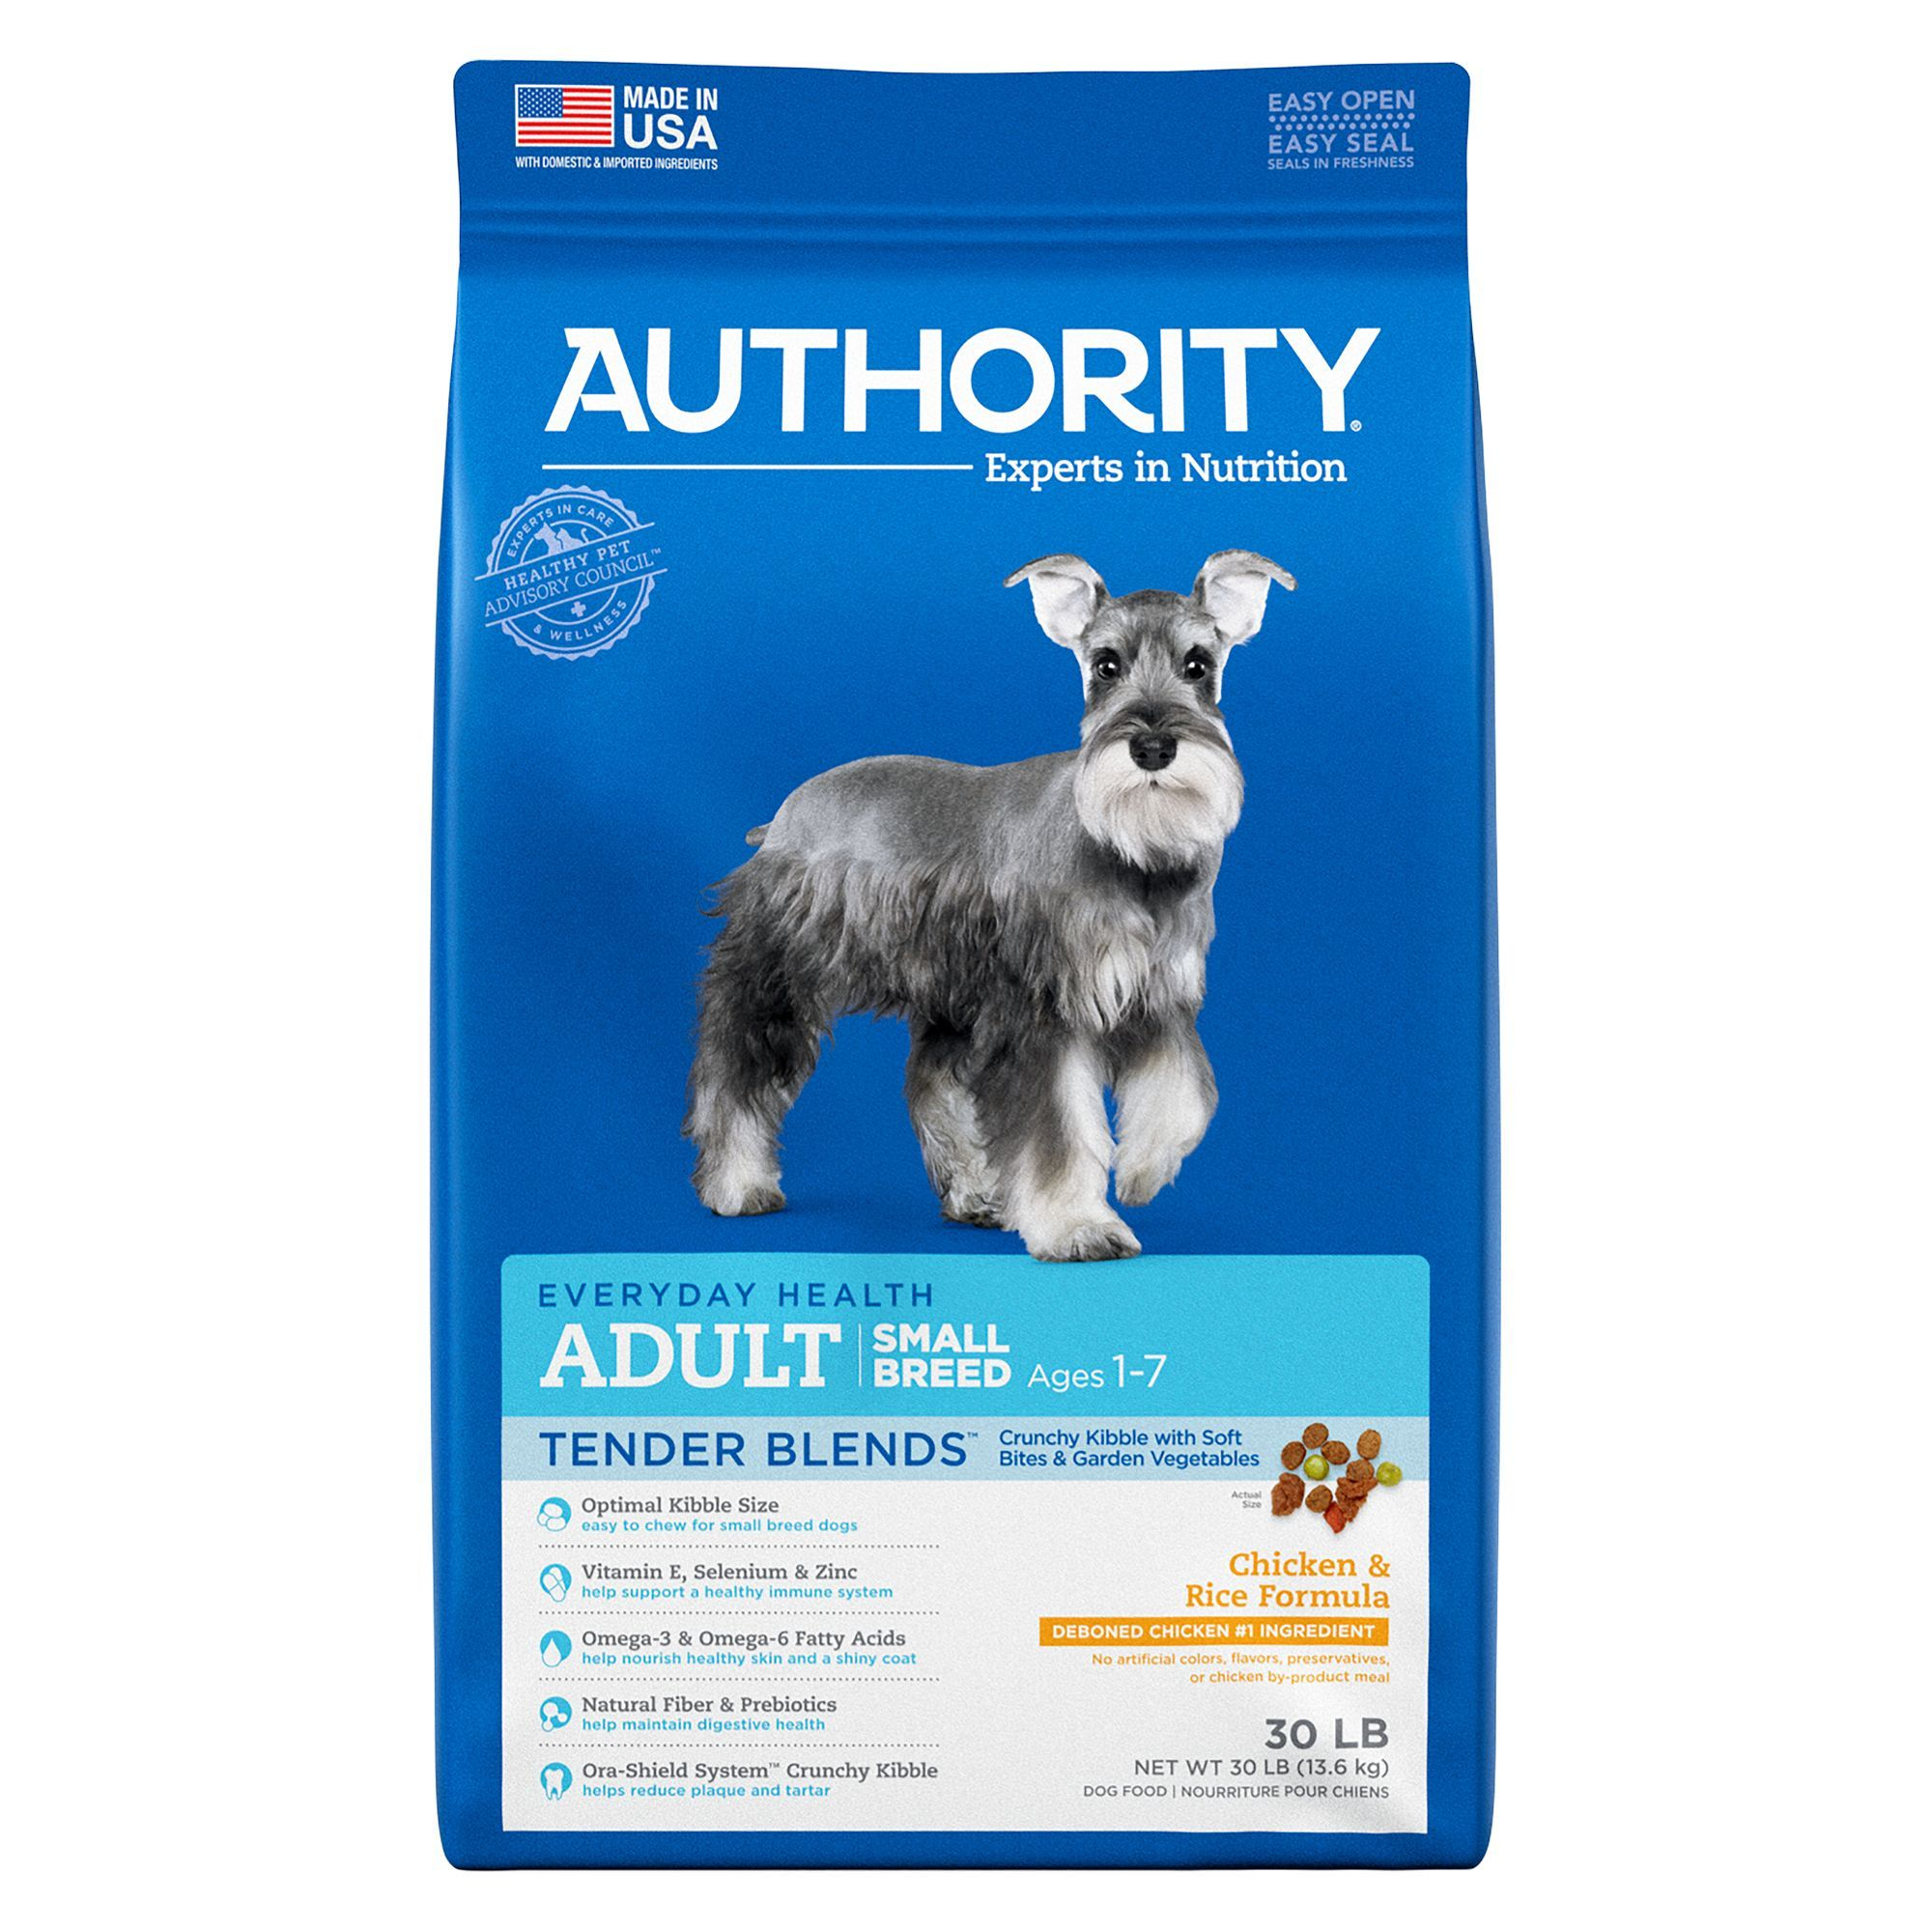 Authority Tender Blends Small Breed Adult Dog Food - Chicken & Rice